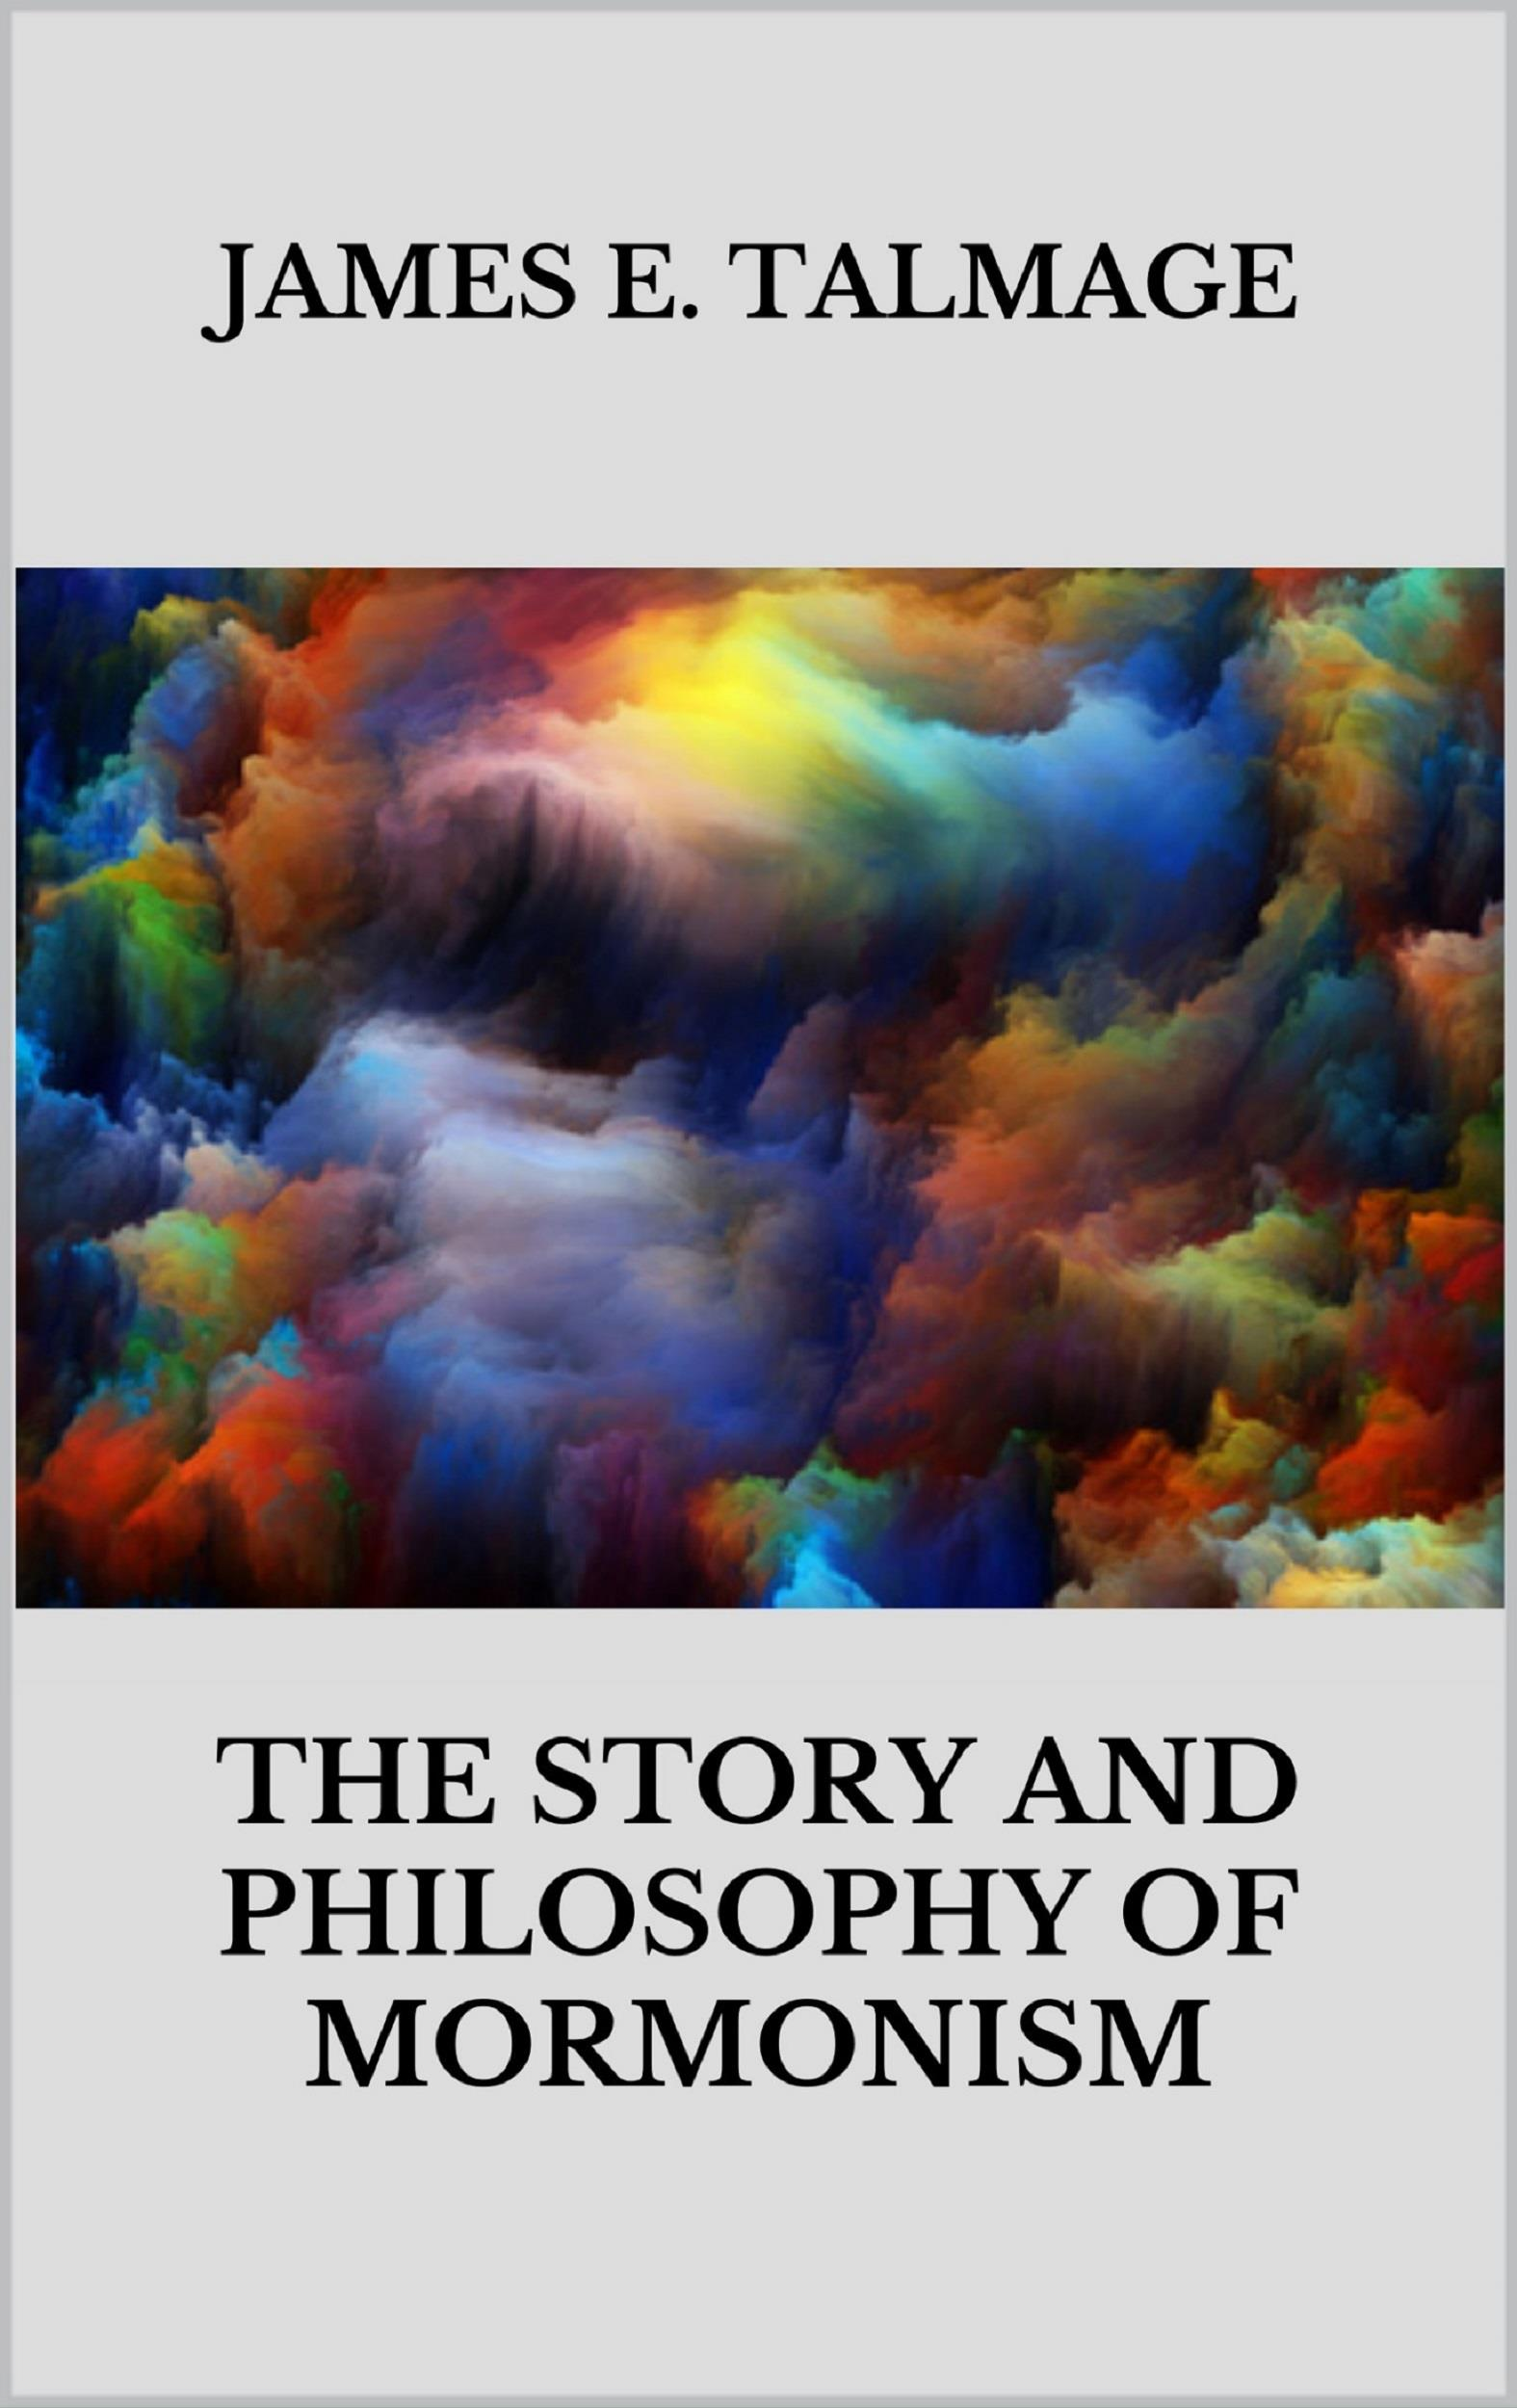 The story and philosophy of mormonism